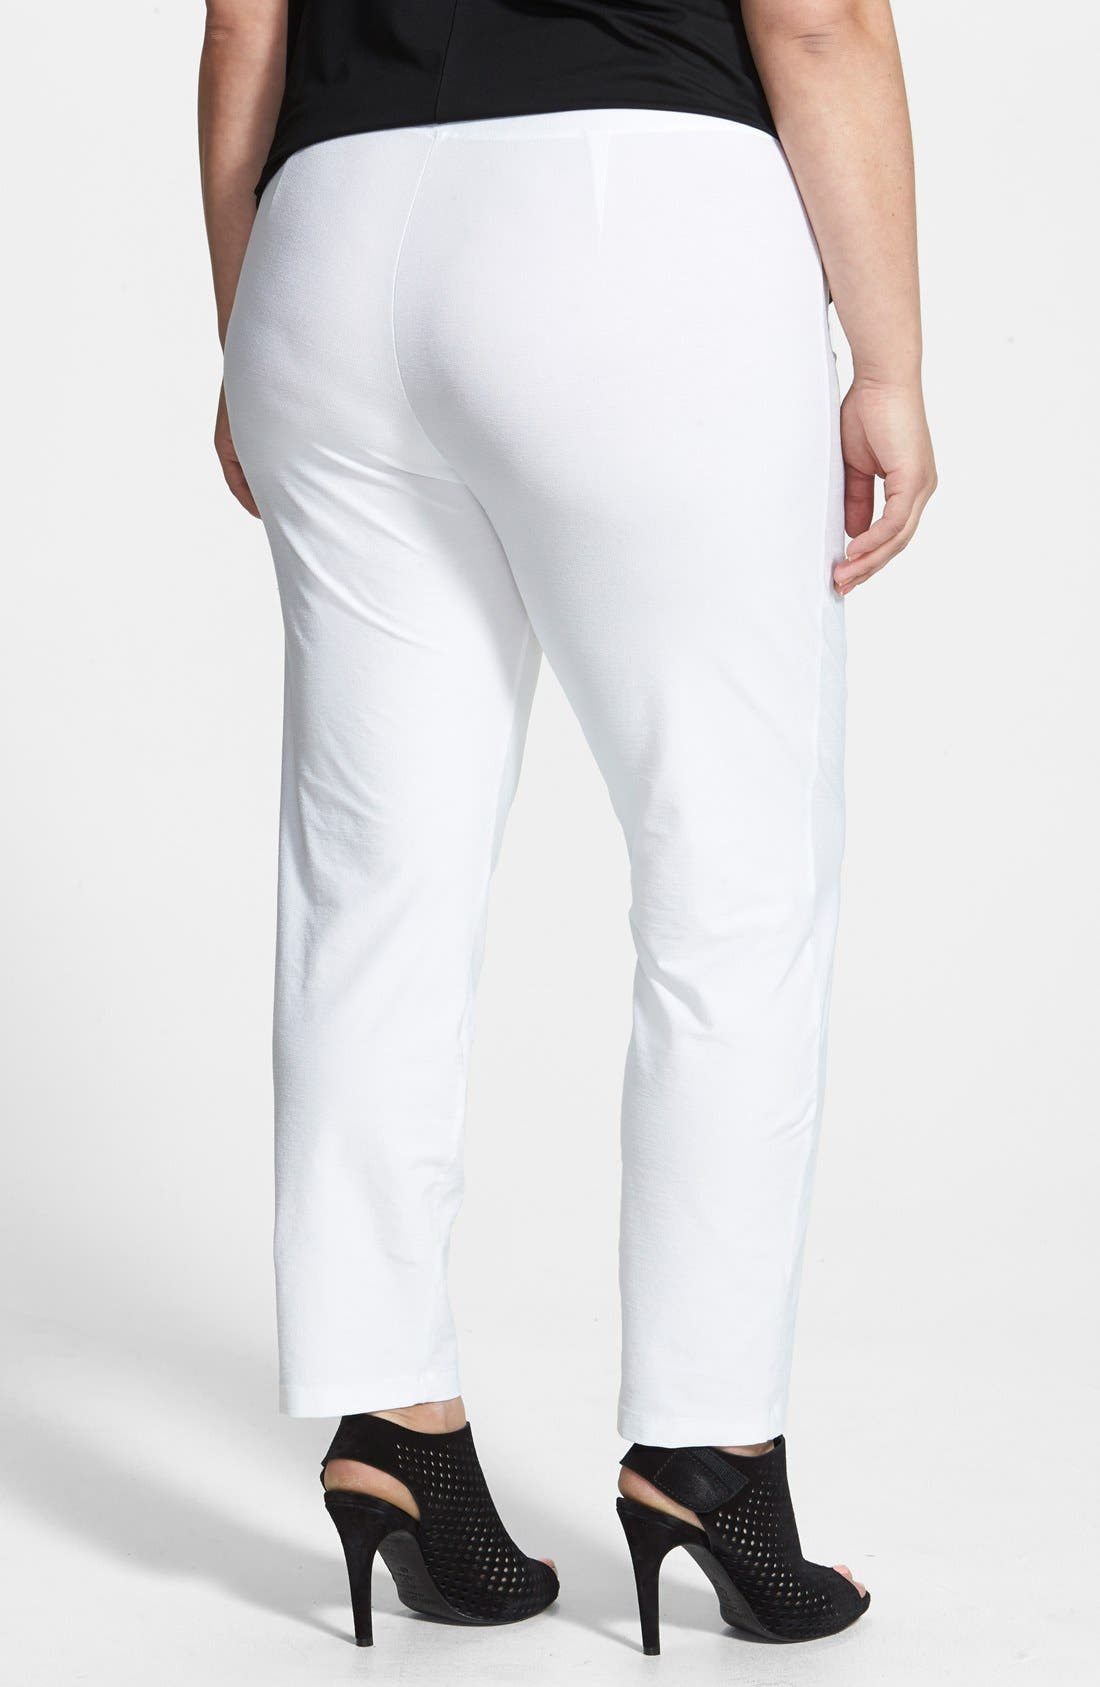 EILEEN FISHER, Crepe Ankle Pants, Alternate thumbnail 2, color, WHITE